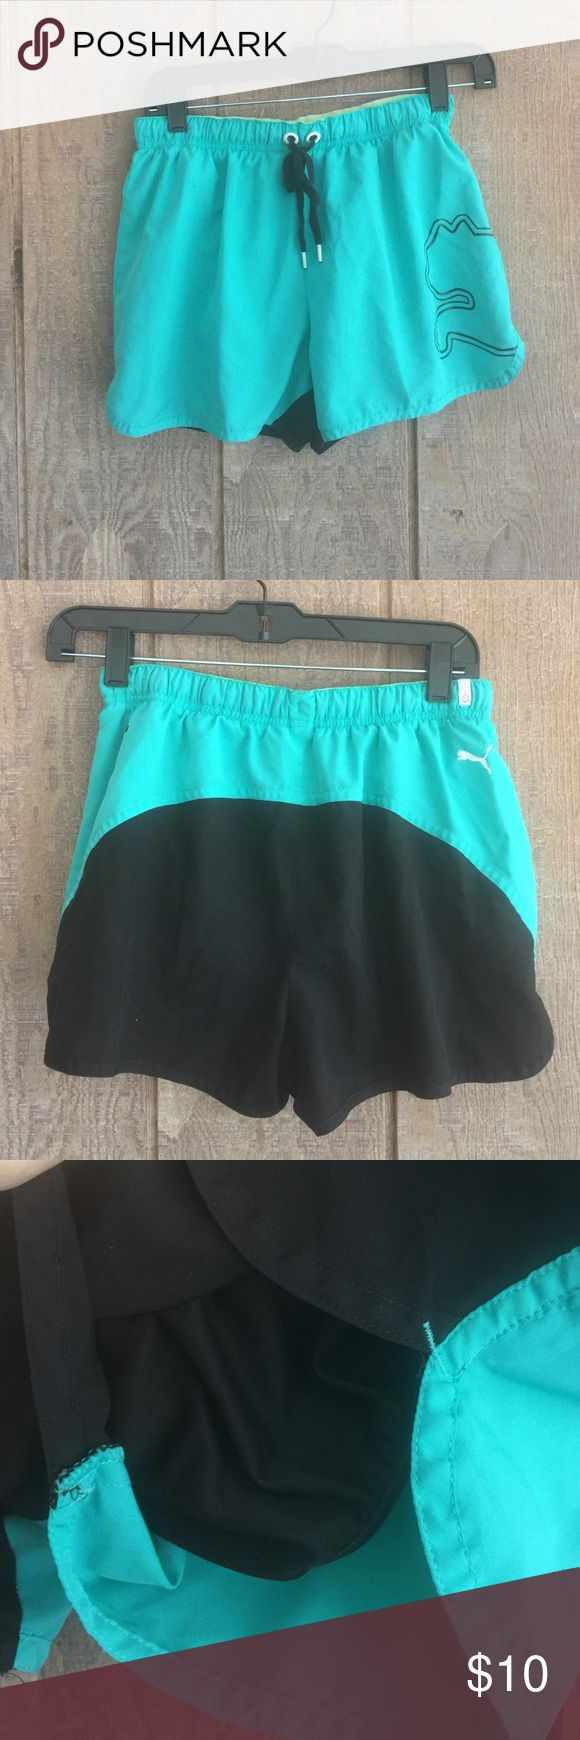 Puma shorts. XS Teal and black Puma shorts. XS. 2 snags in black fabric in back. Did not show up well in pics. Shorts also have a black inner panty as pictured. Puma Shorts